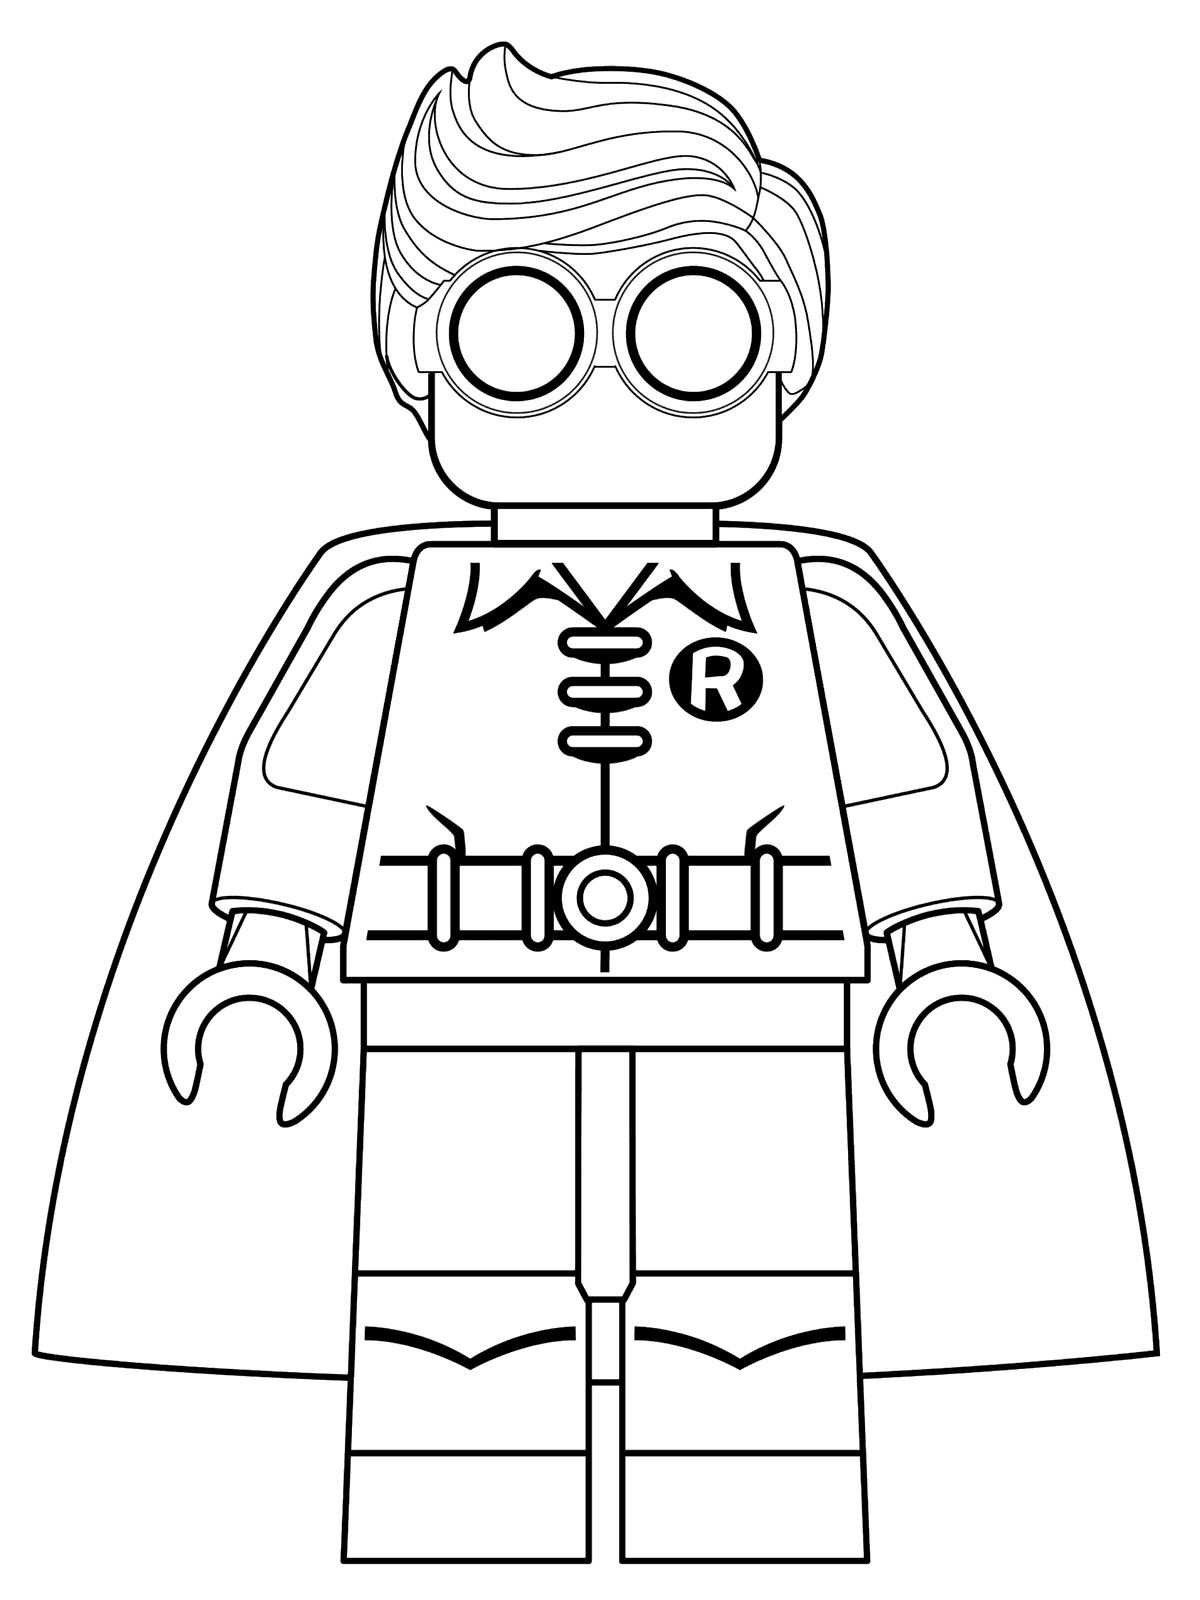 superman penguin coloring pages - photo#9